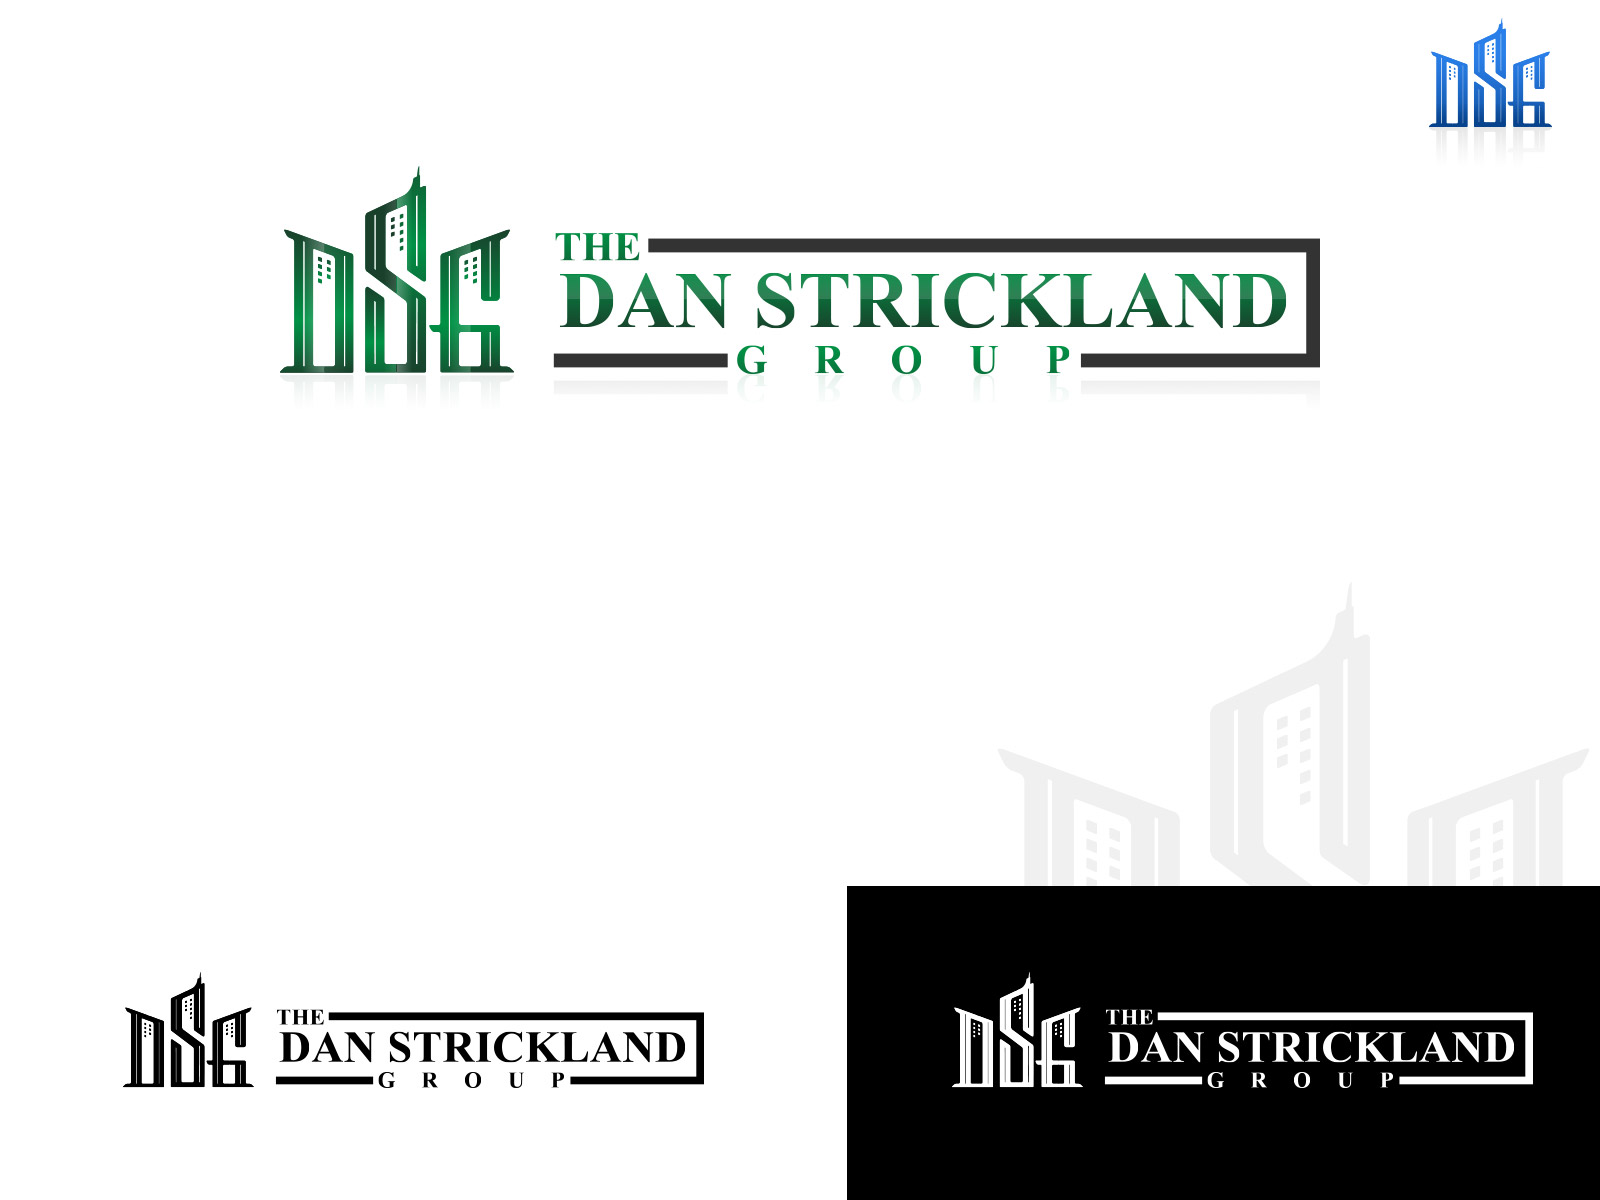 Logo Design by olii - Entry No. 265 in the Logo Design Contest Creative Logo Design for The Dan Strickland Group.